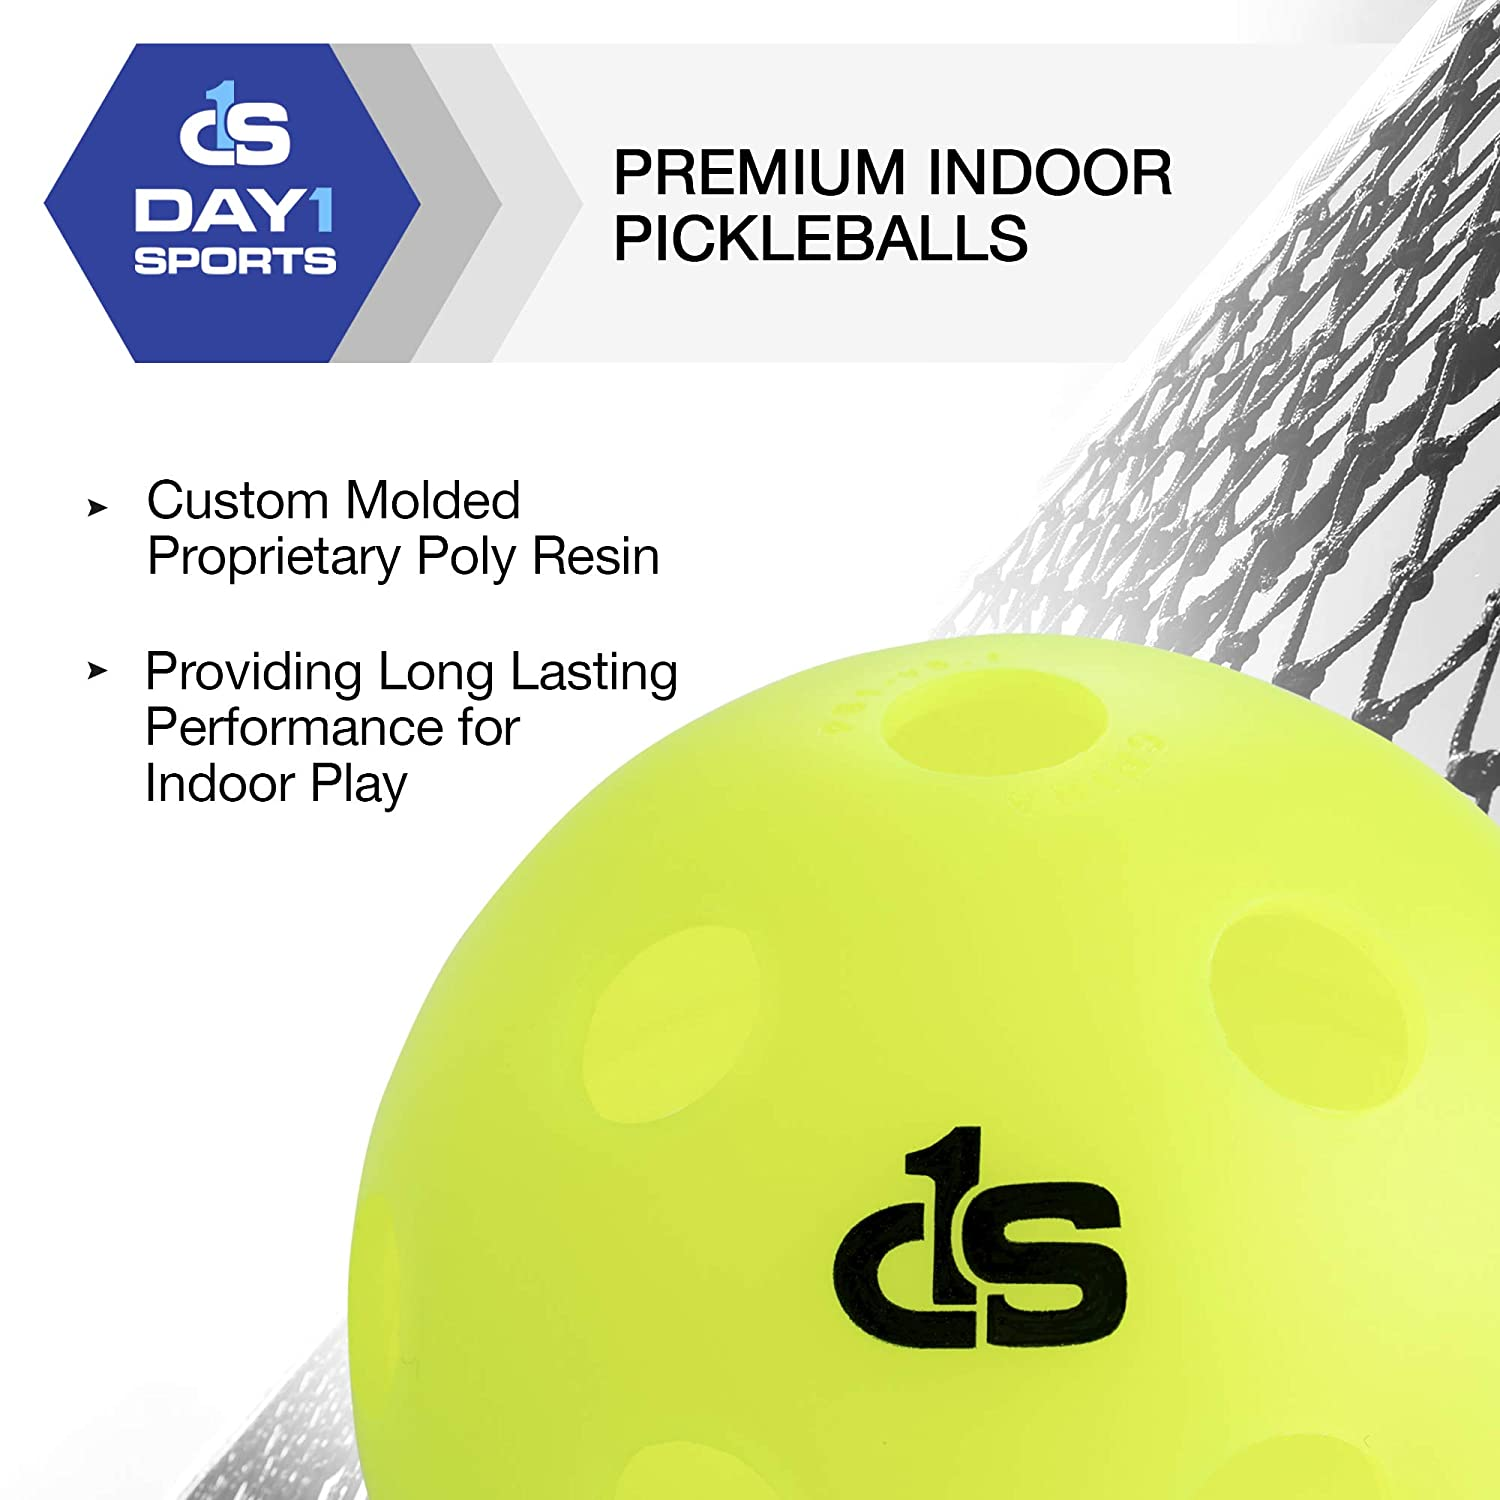 Amazon.com : Day 1 Sports Indoor Pickleball Balls in 3 Pack - Professional, Durable Pickleballs - High Vis Neon Green Pickle Ball Set Inside Accessories ...